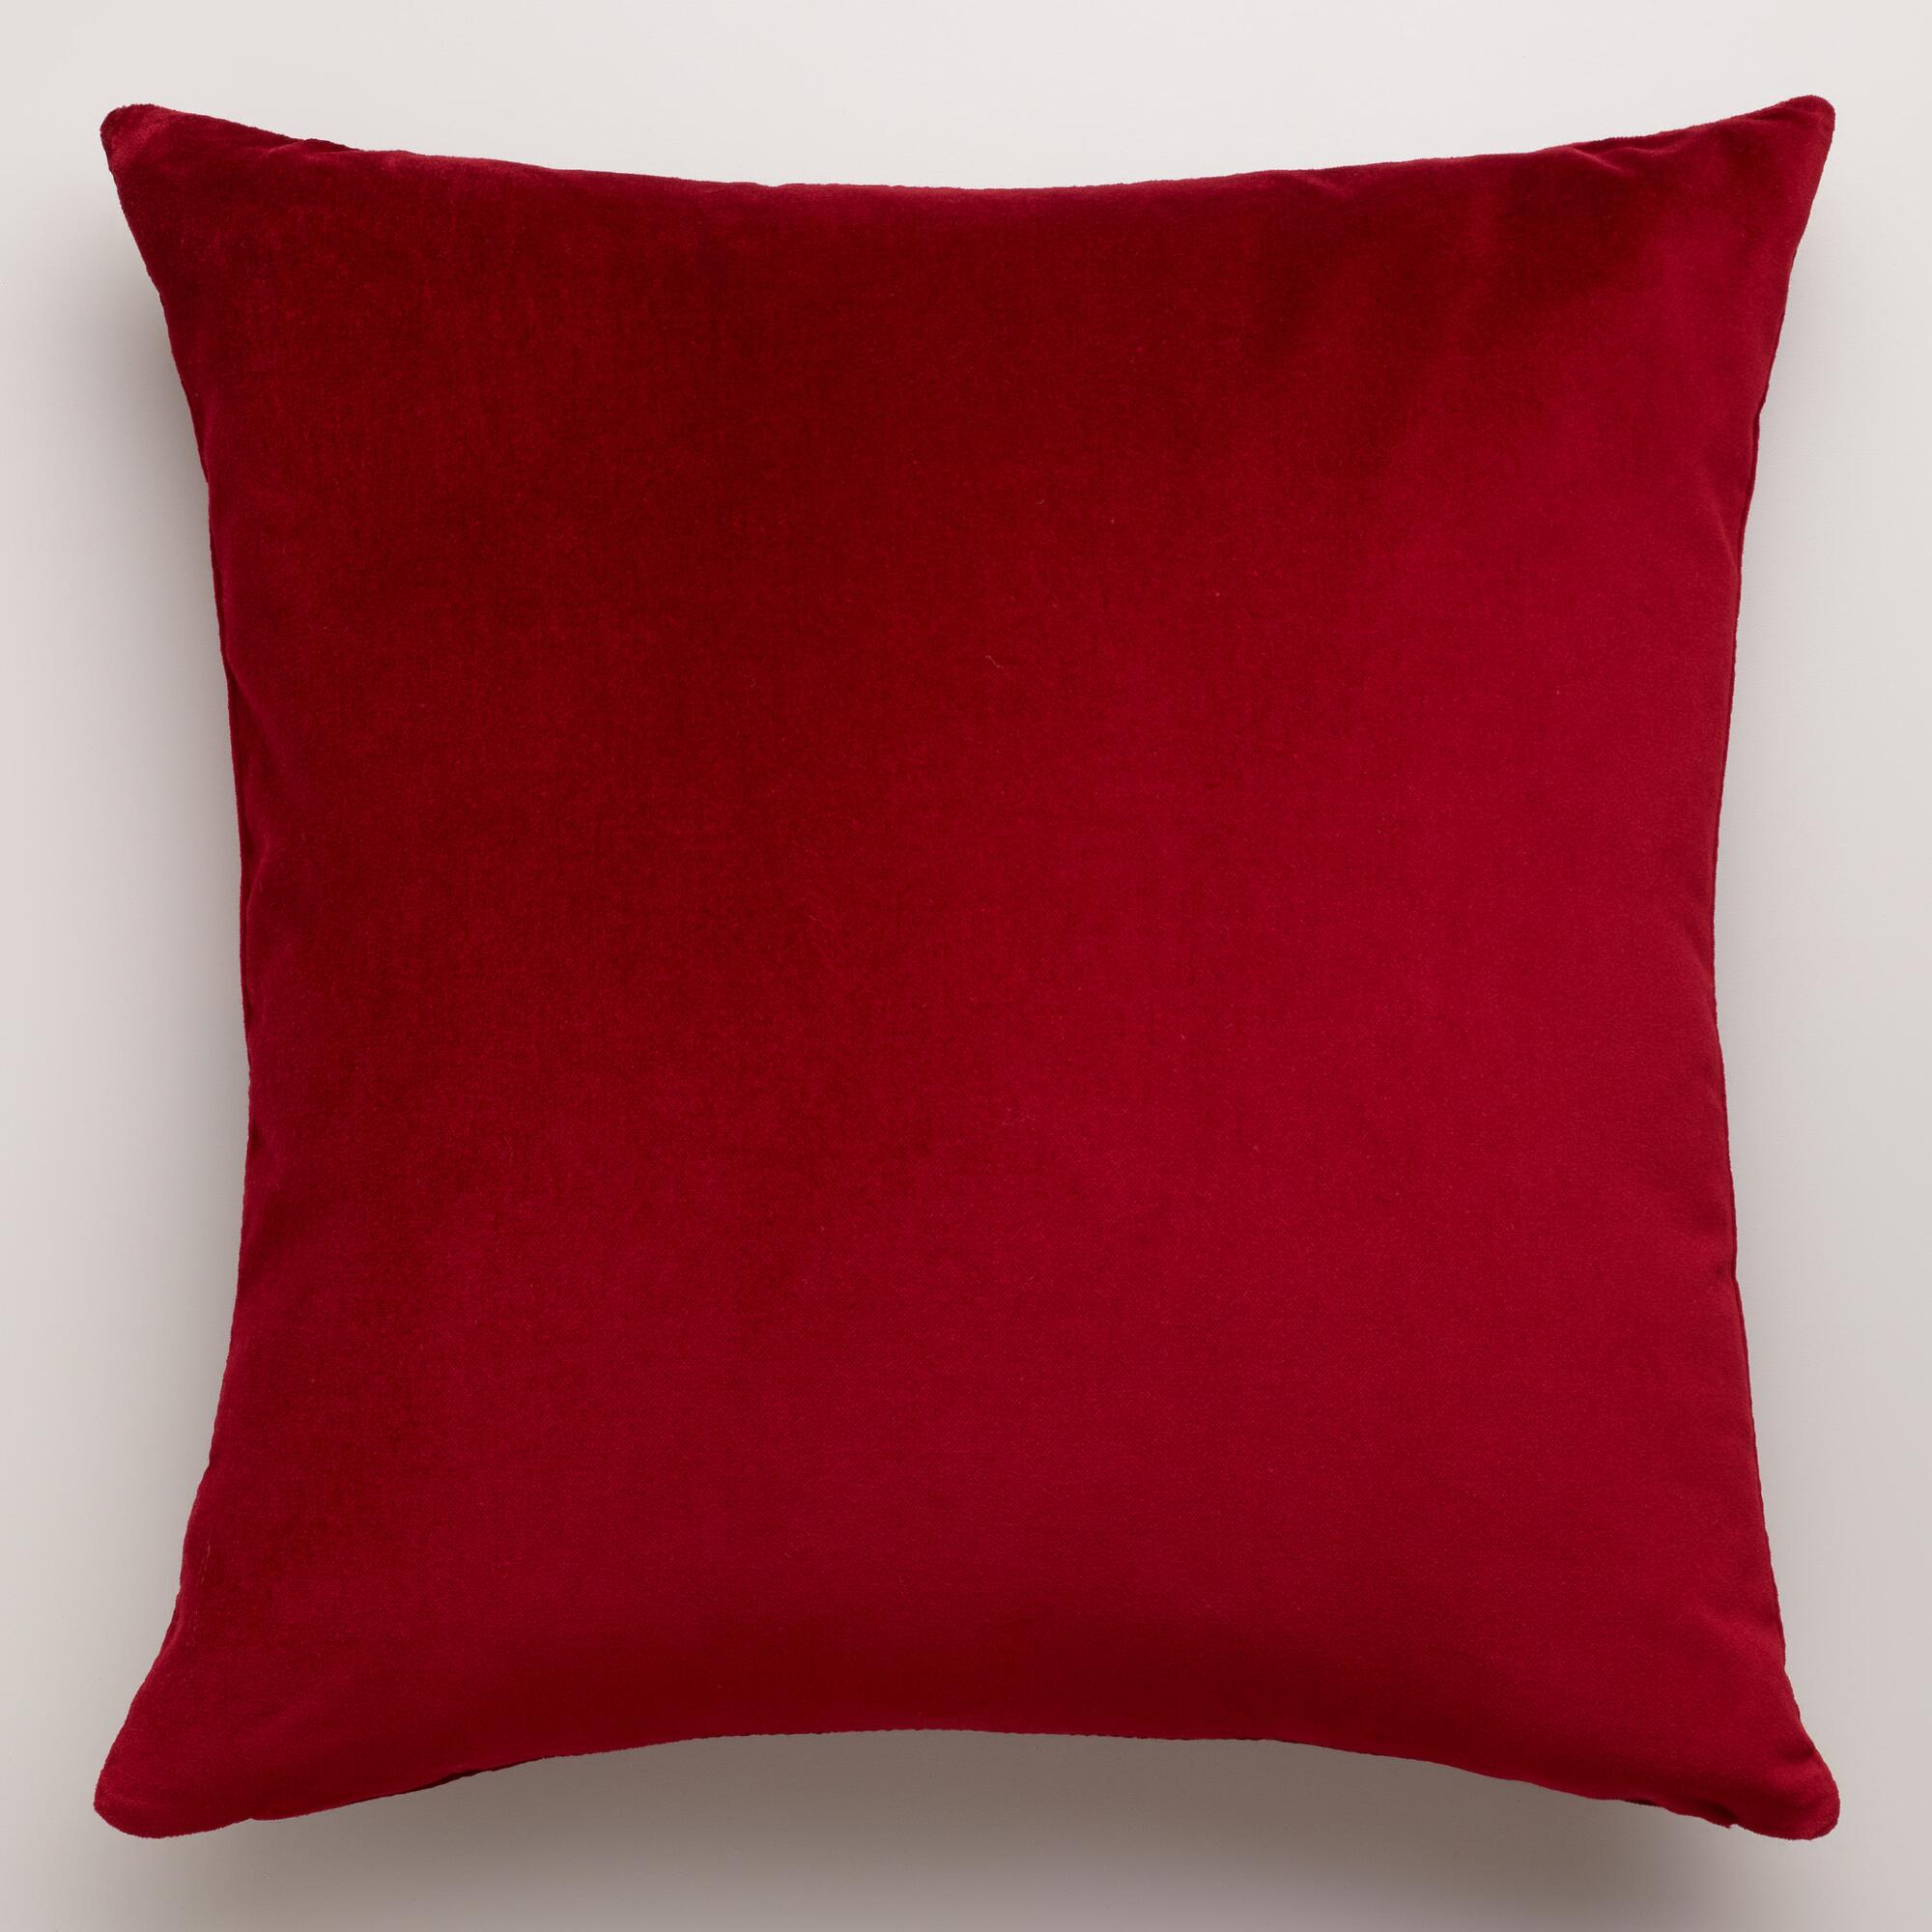 Throw Pillows For Sofa Images : Sofa Pillows ~ Home & Interior Design